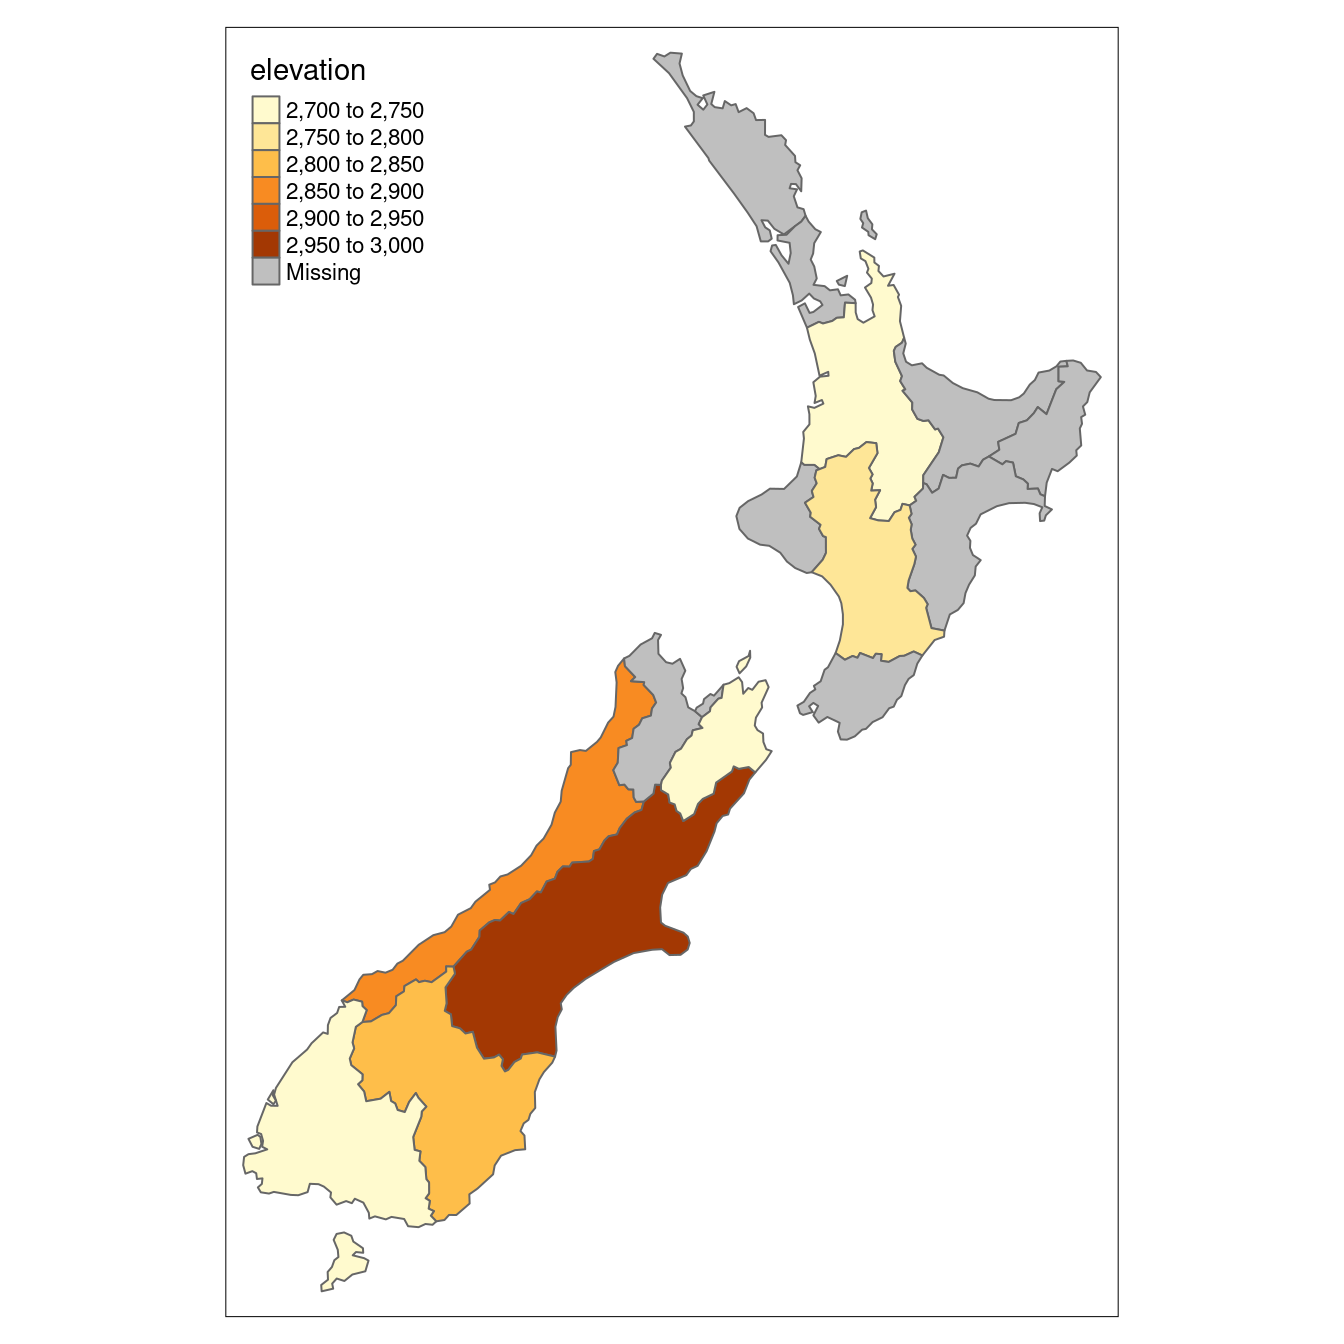 Average height of the top 101 high points across the regions of New Zealand.